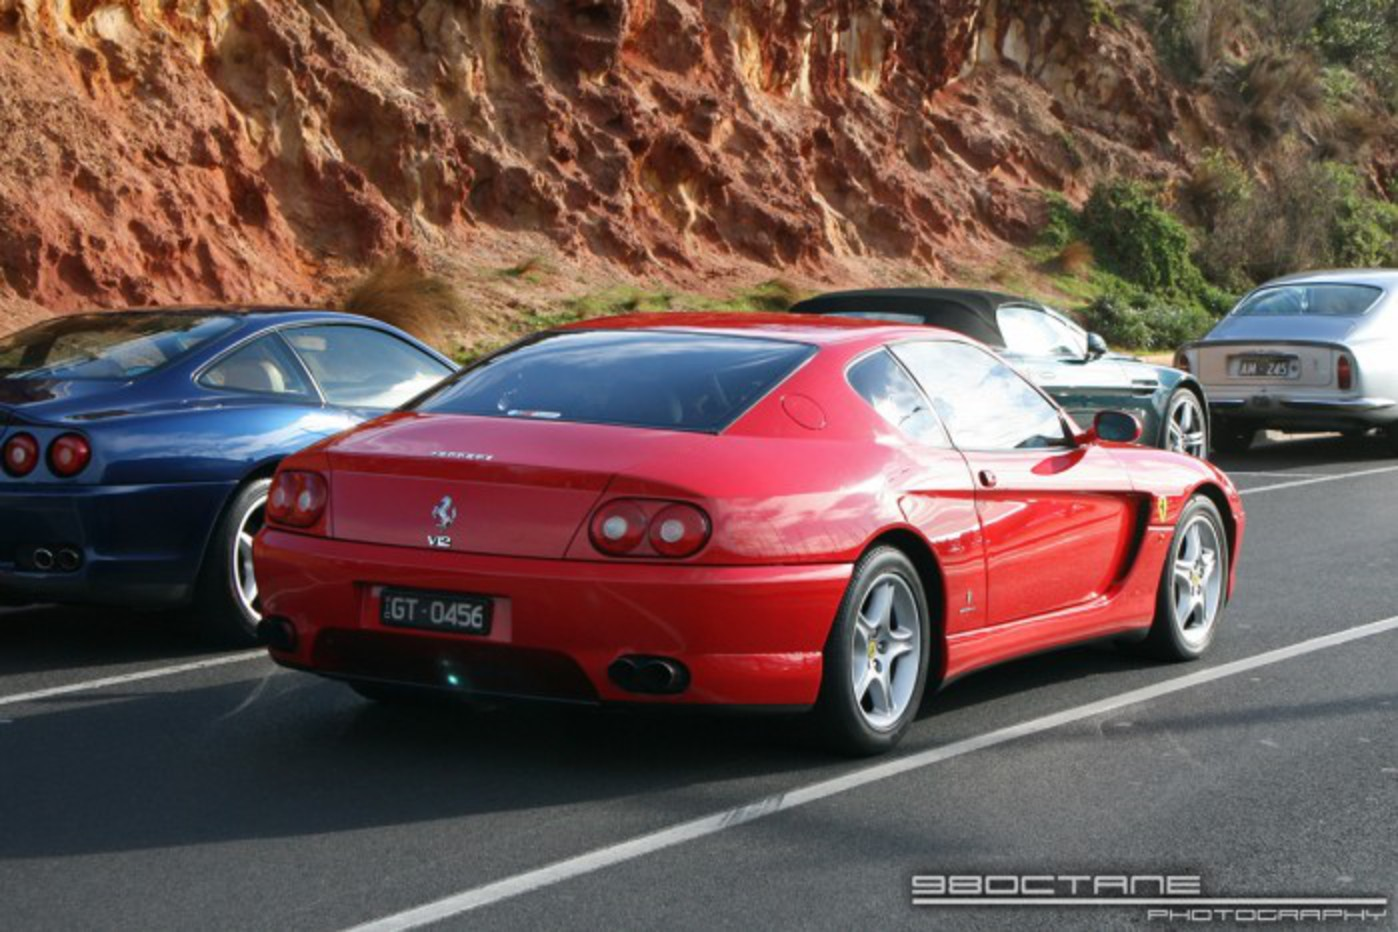 topworldauto photos of ferrari 456 gt photo galleries. Black Bedroom Furniture Sets. Home Design Ideas